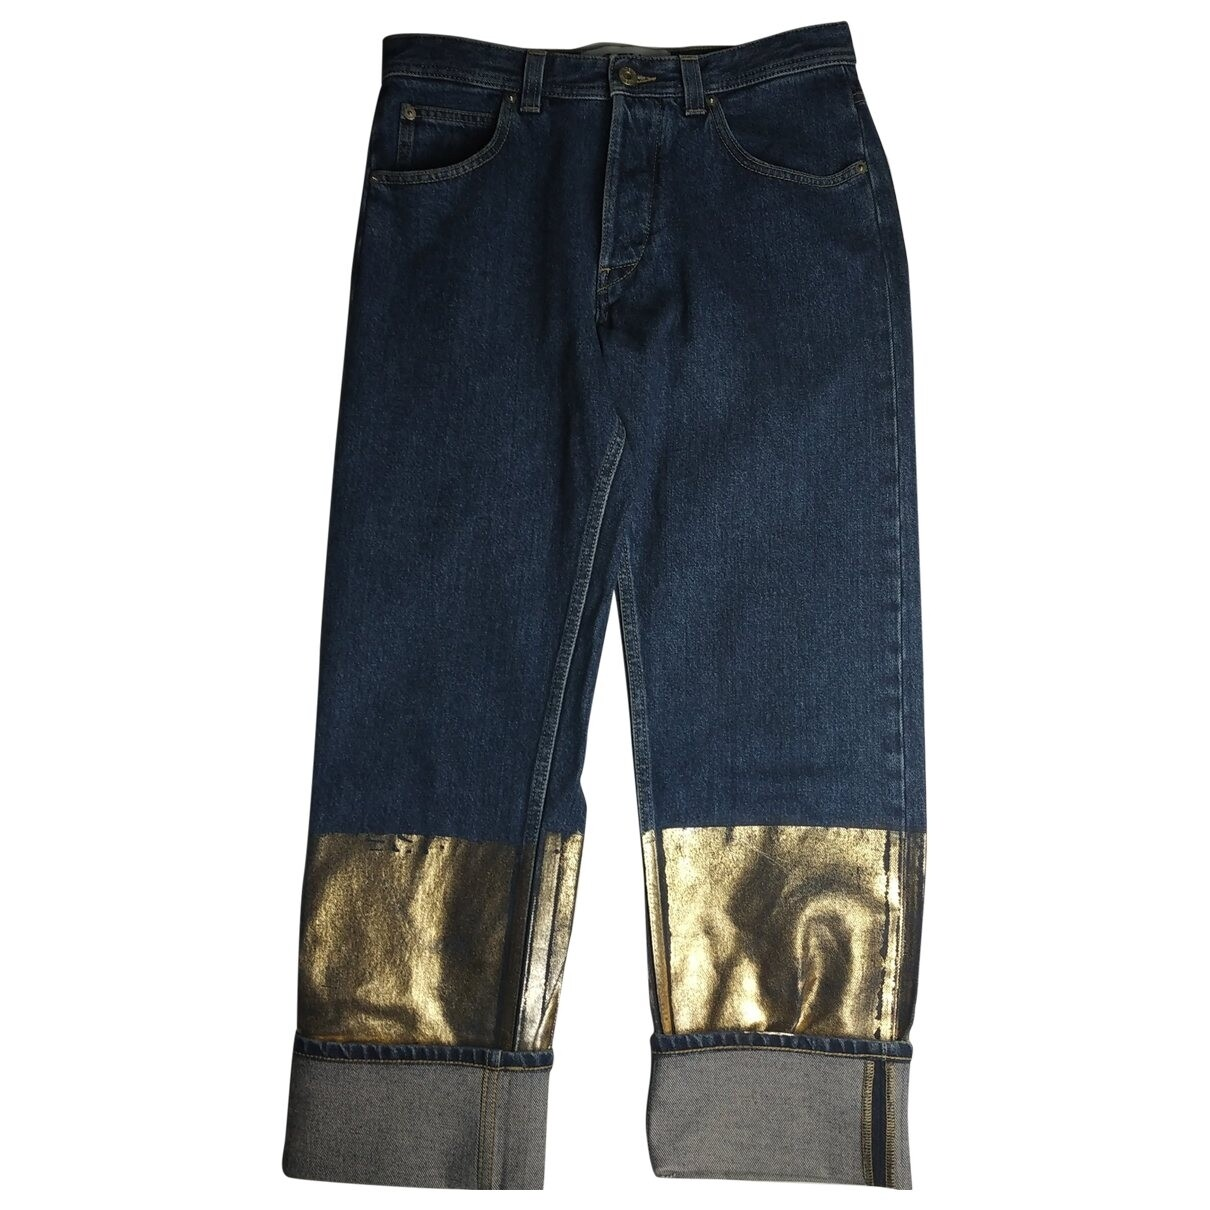 Loewe Blue Cotton Jeans with Gold